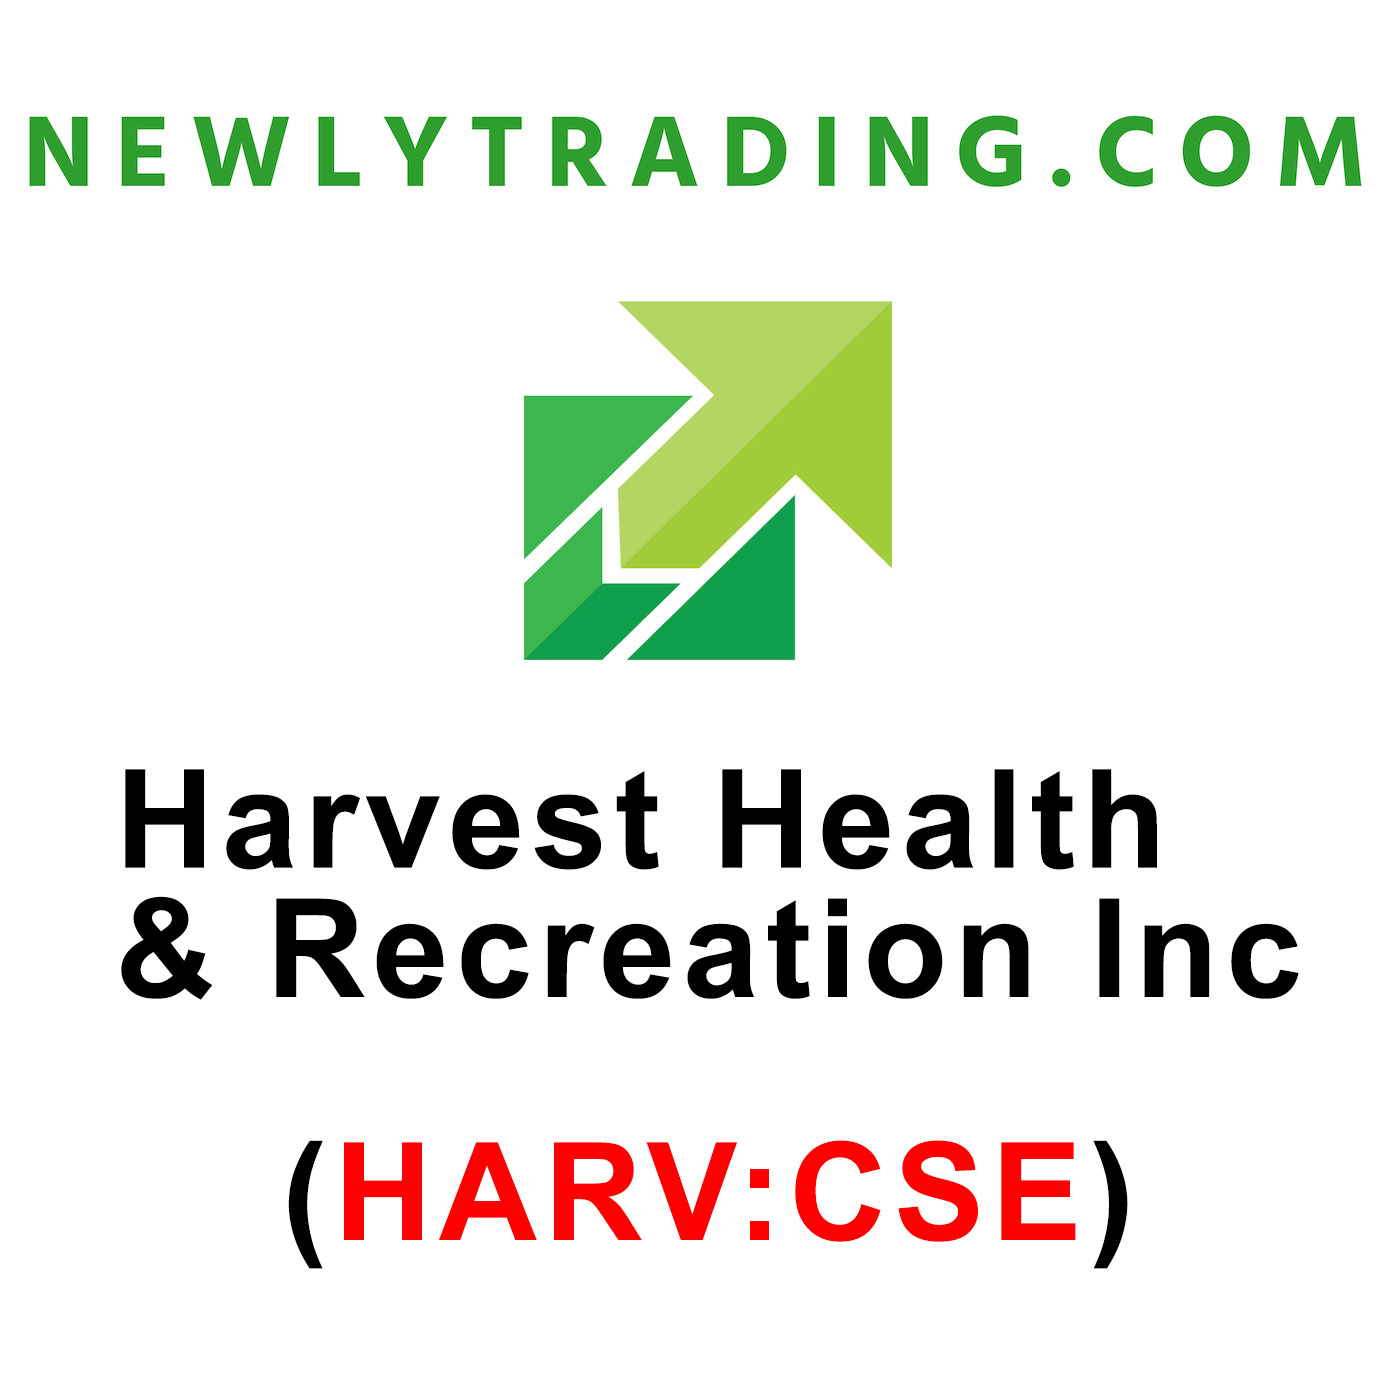 NewlyTrading! Harvest Health & Recreation Inc. (HARV:CSE) Harvest Rec NewlyTrading Dec 6